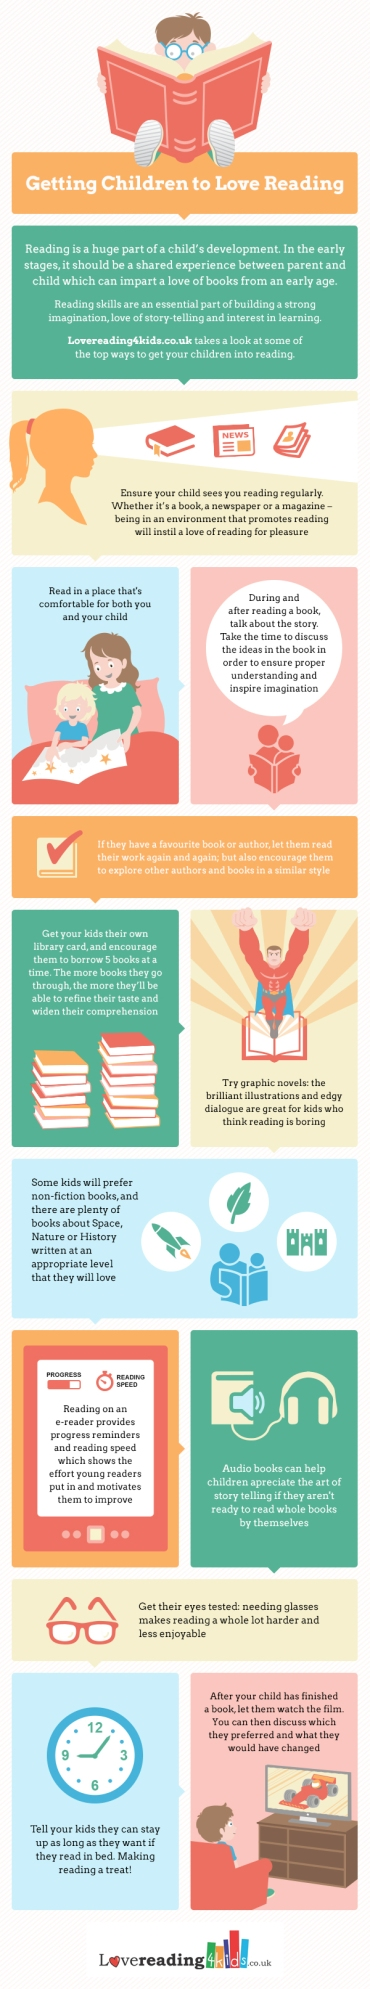 How-to-encourage-children-to-read-infographic